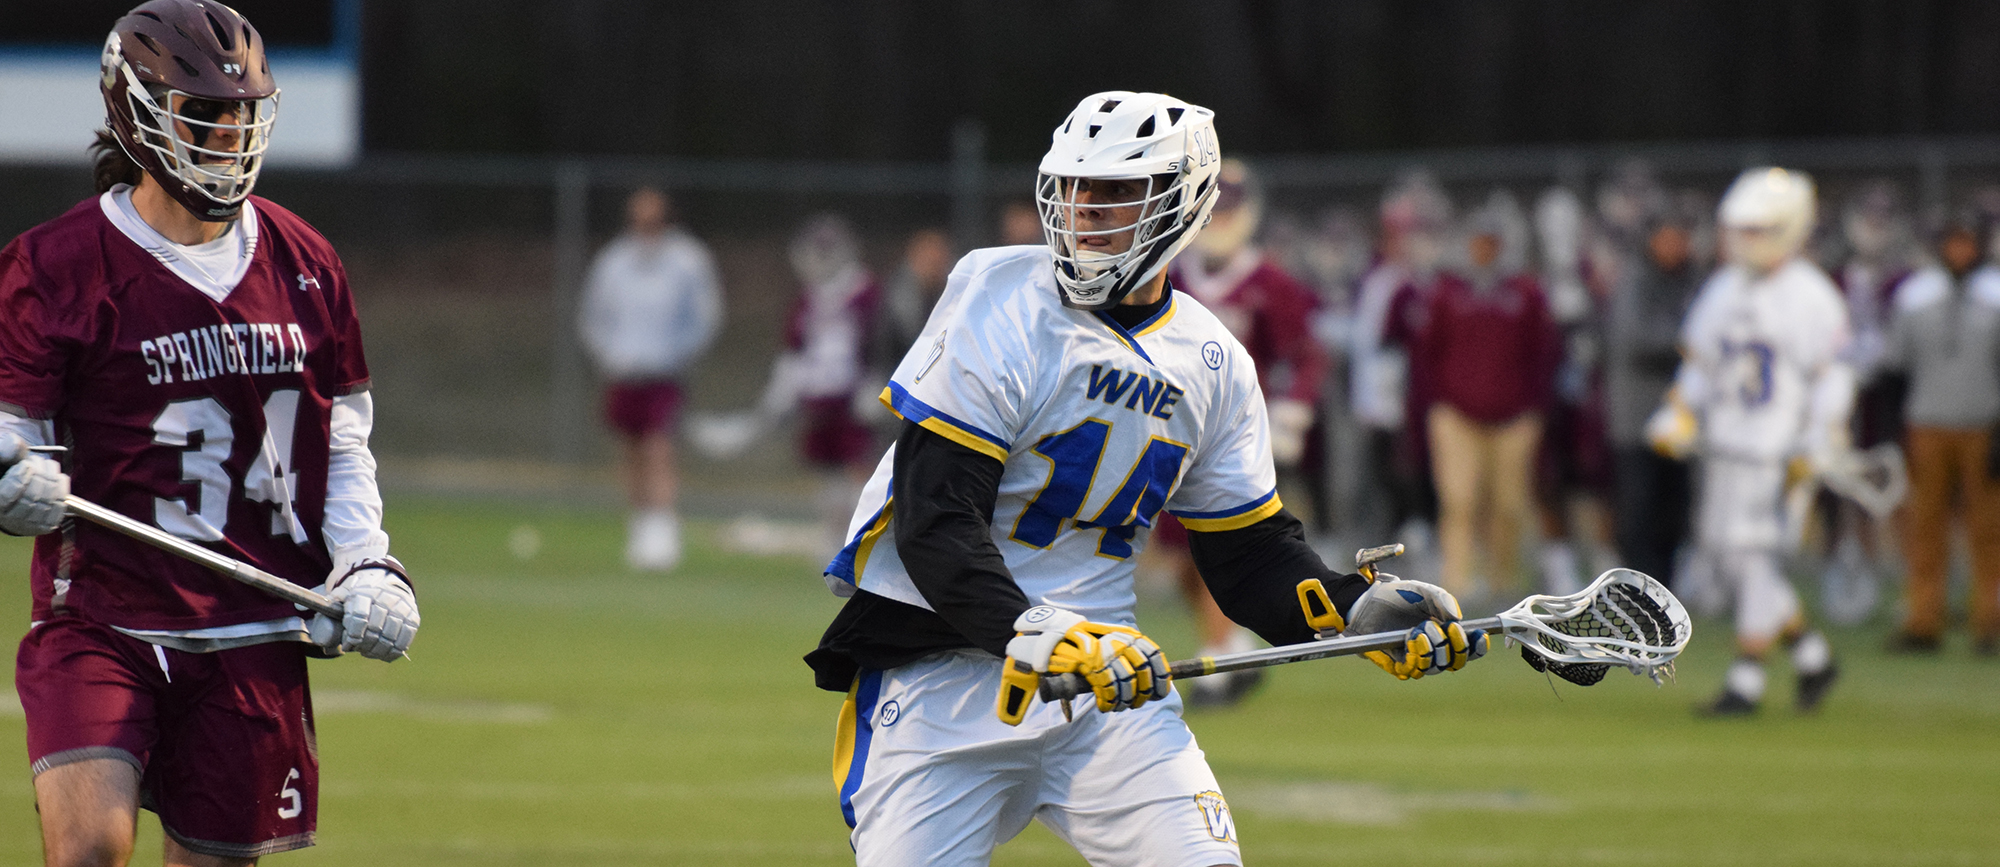 Nick Gamba scored five goals in Western New England's 18-12 loss to Springfield College on Tuesday night. (Photo by Rachael Margossian)